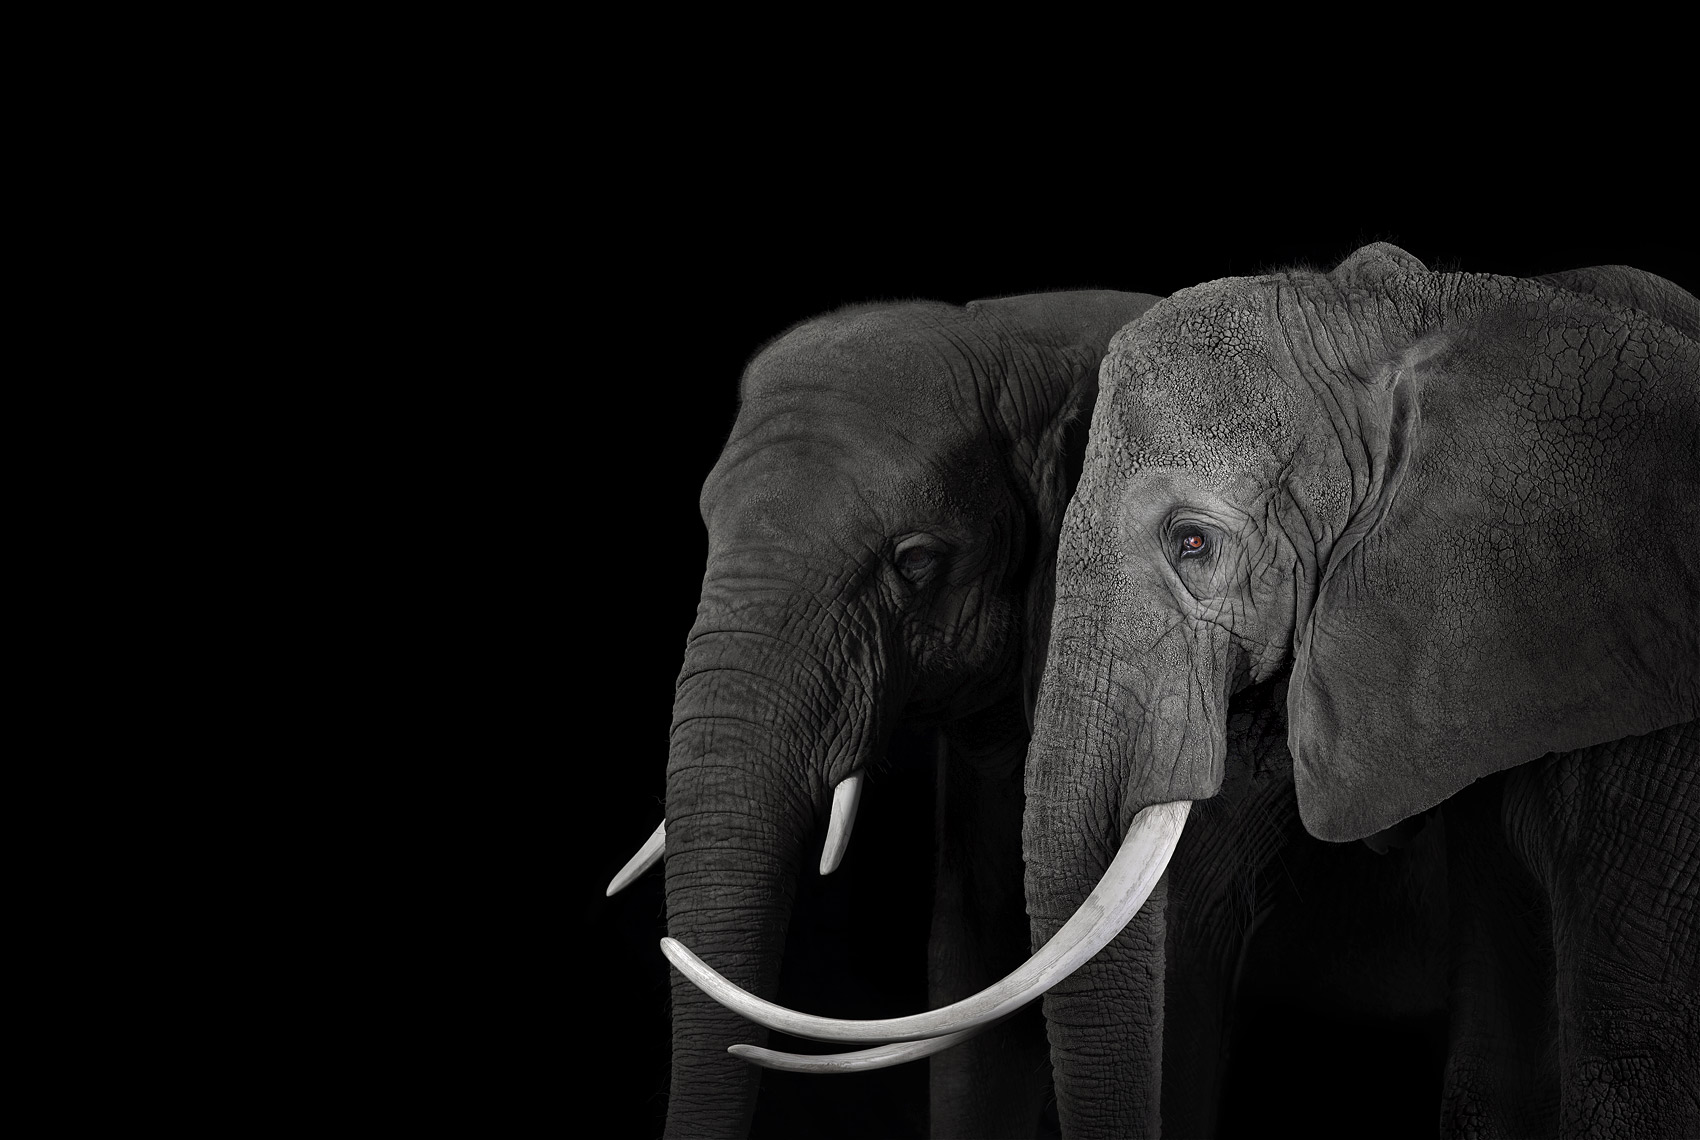 African elephants profile portrait by wildlife photographer Brad Wilson